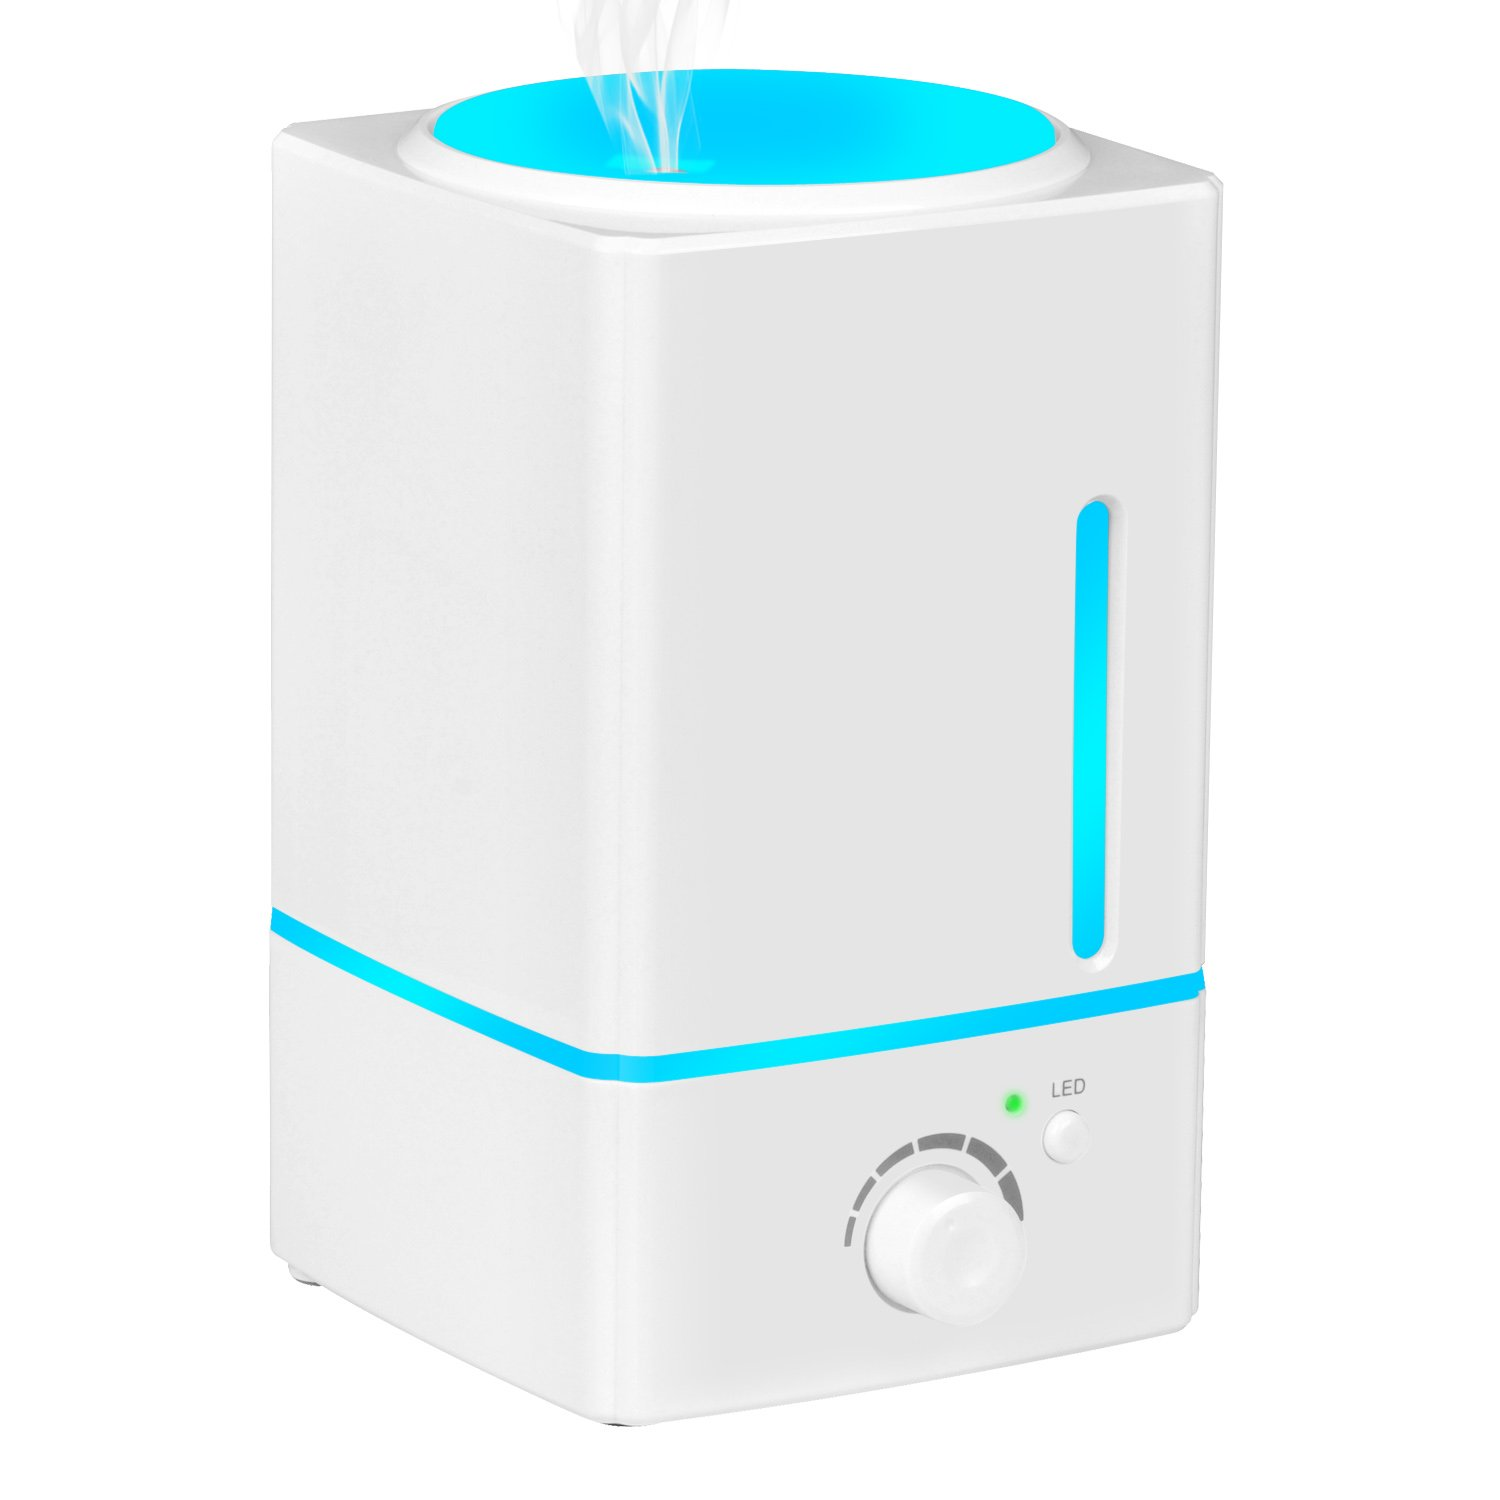 OliveTech Aromatherapy Essential Humidifier Ultrasonic